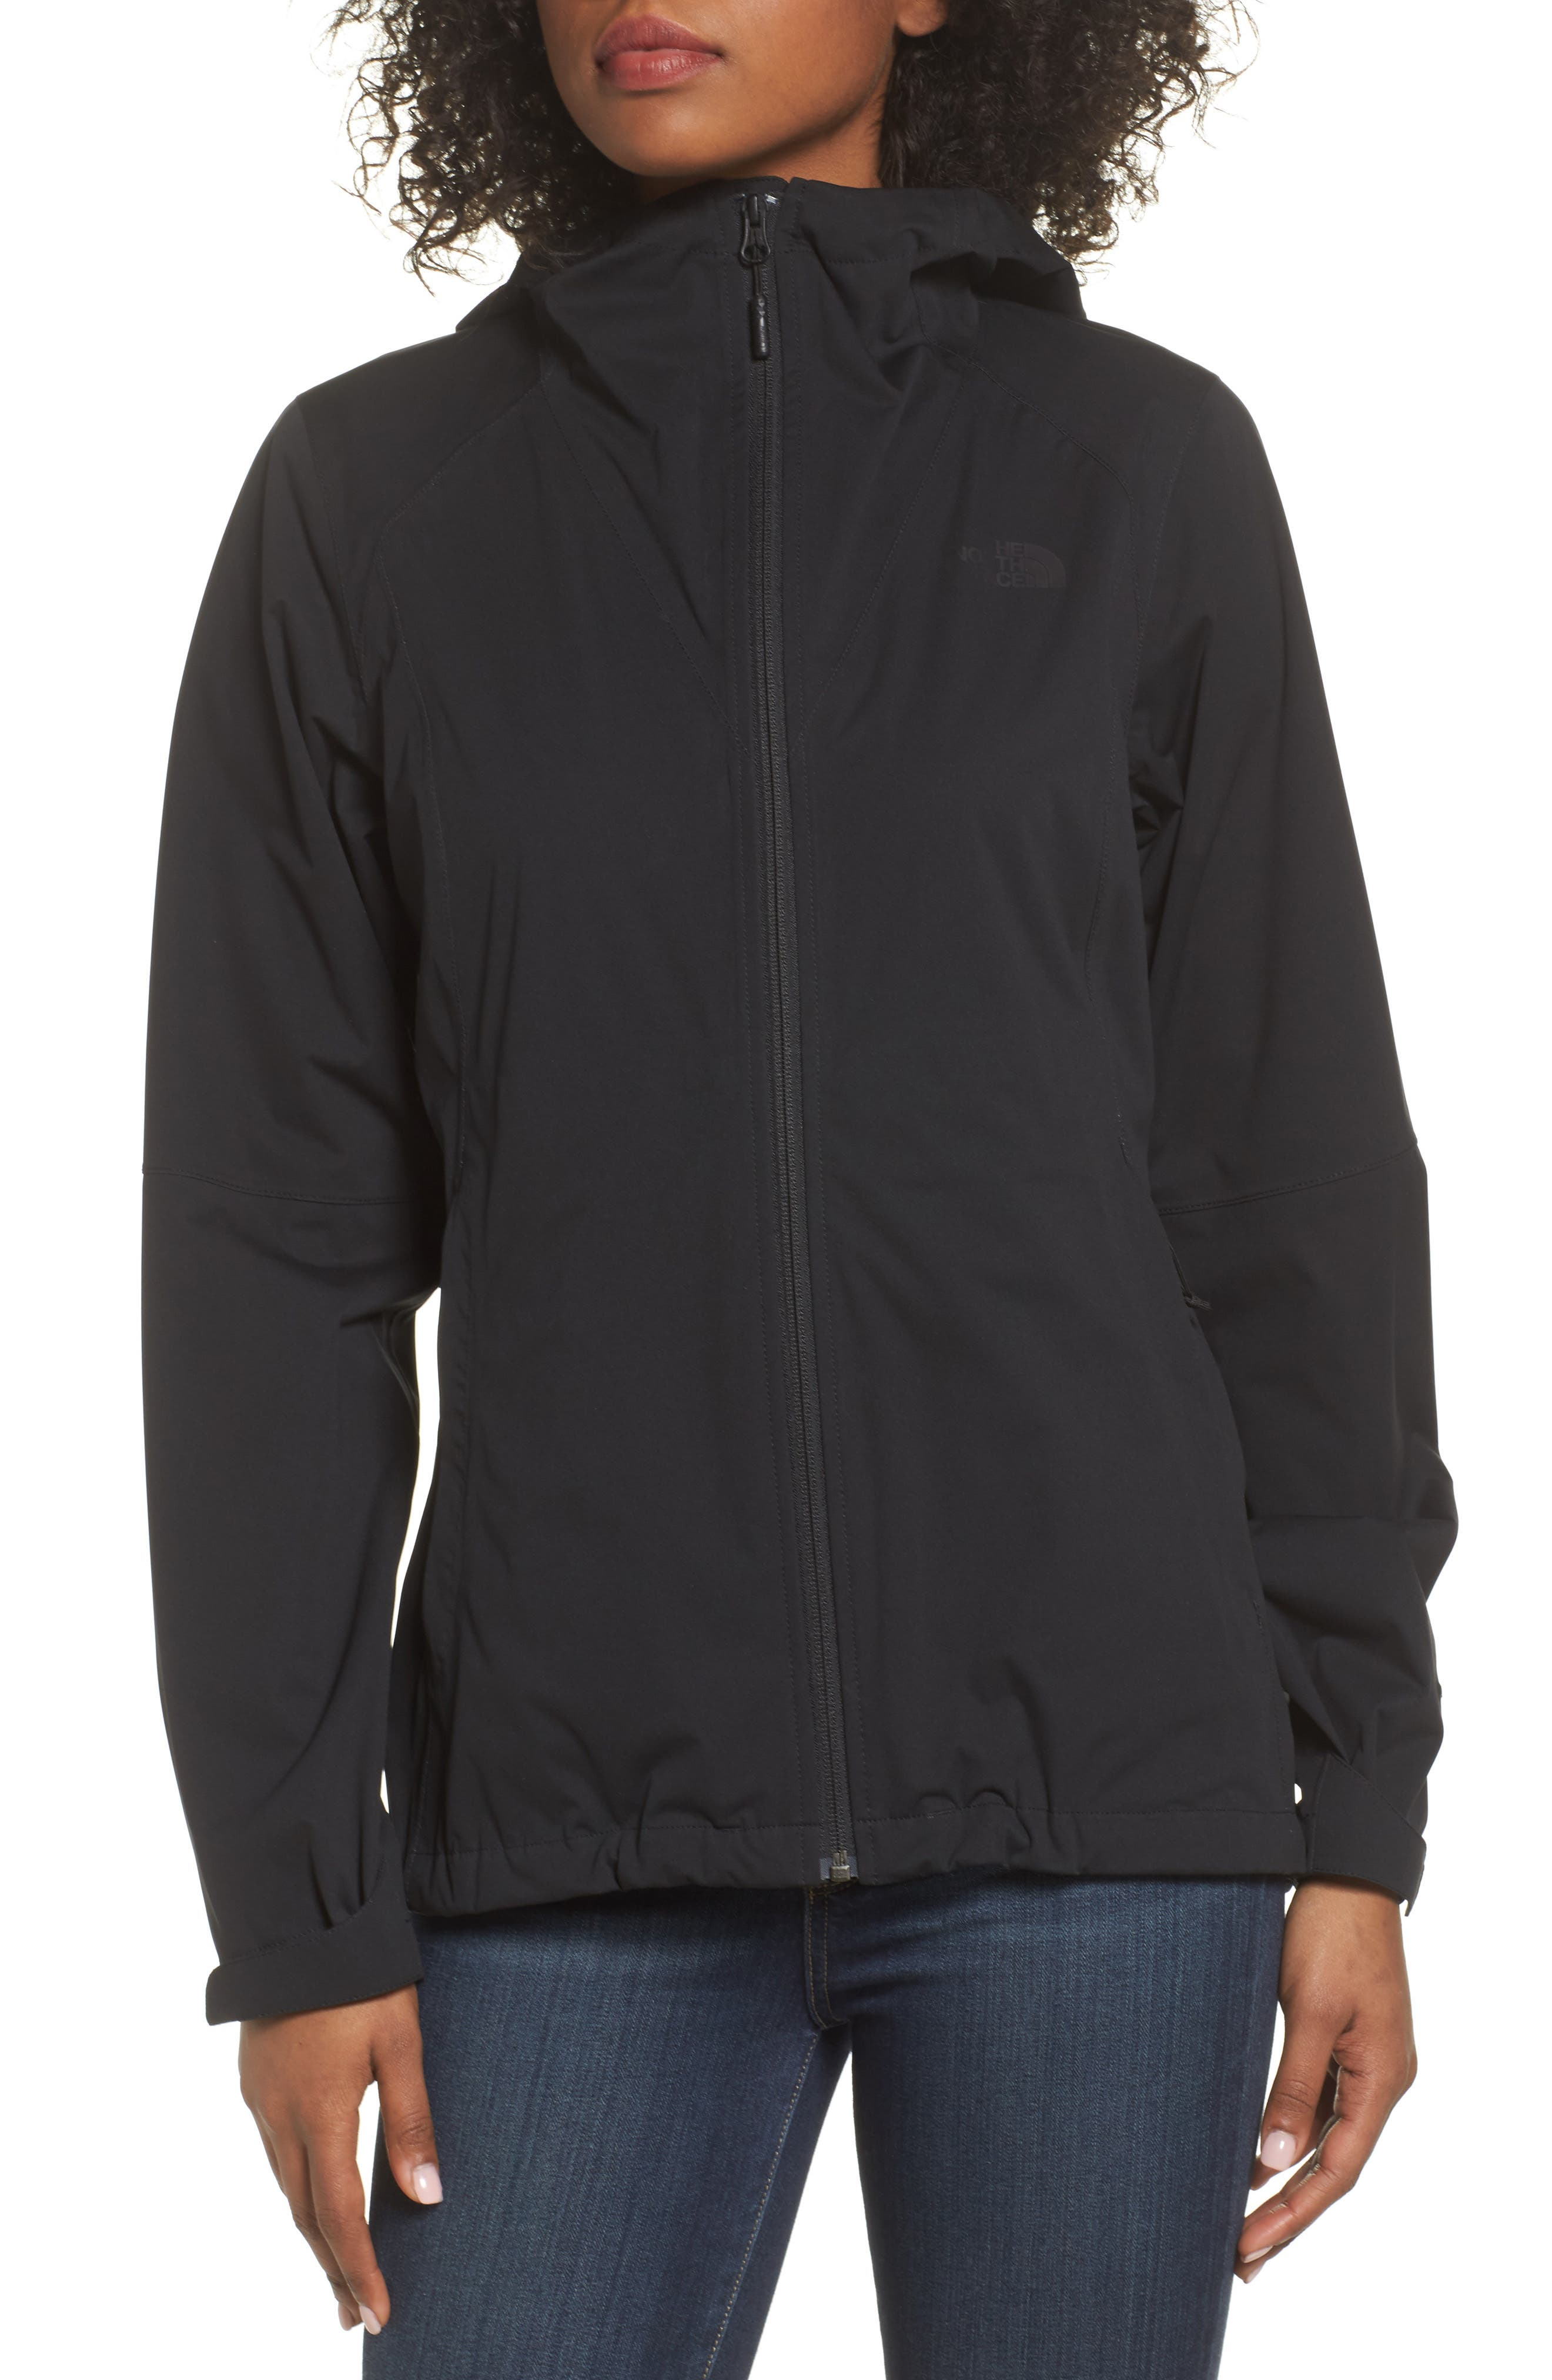 Allproof Stretch Jacket,                             Alternate thumbnail 4, color,                             TNF BLACK